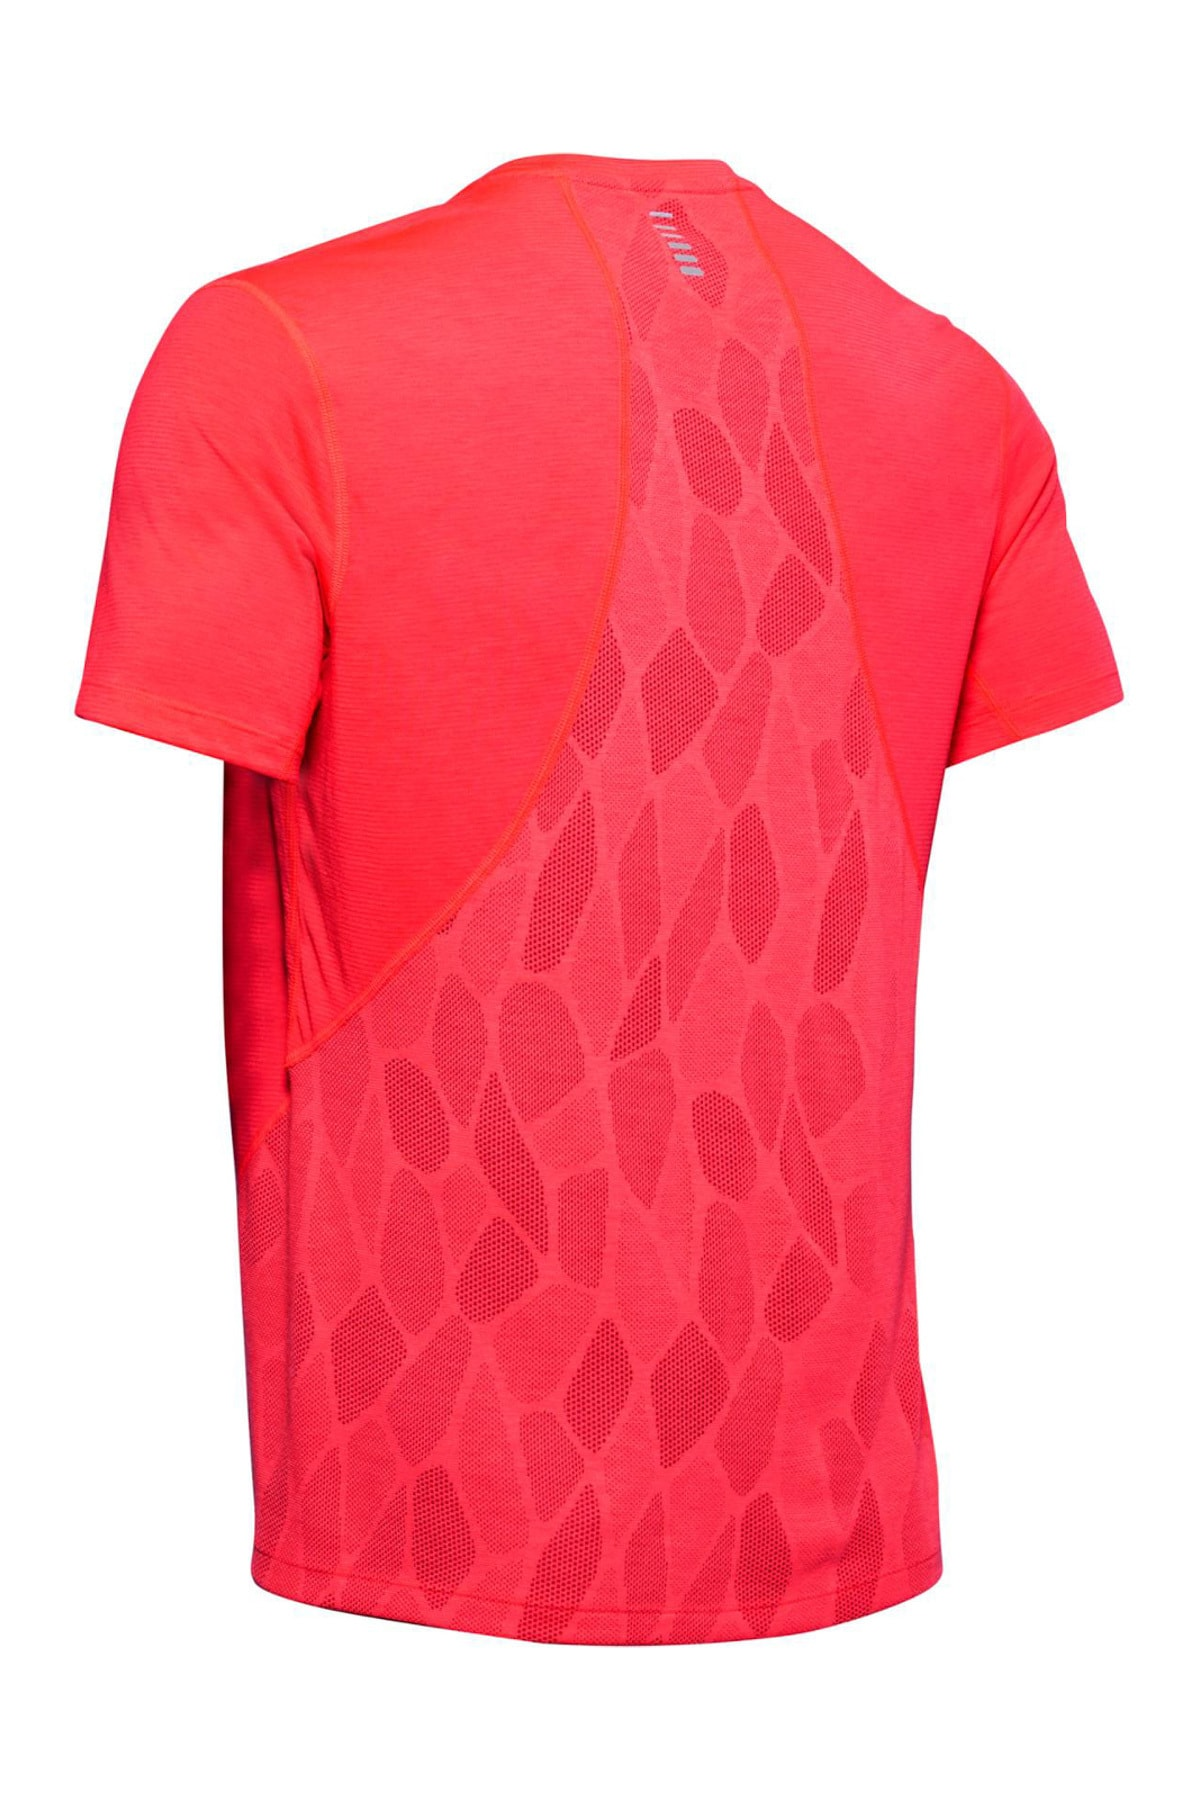 Under Armour Erkek Spor T-Shirt - M Ua Streaker 2.0 Shift Crew - 1350096-628 2